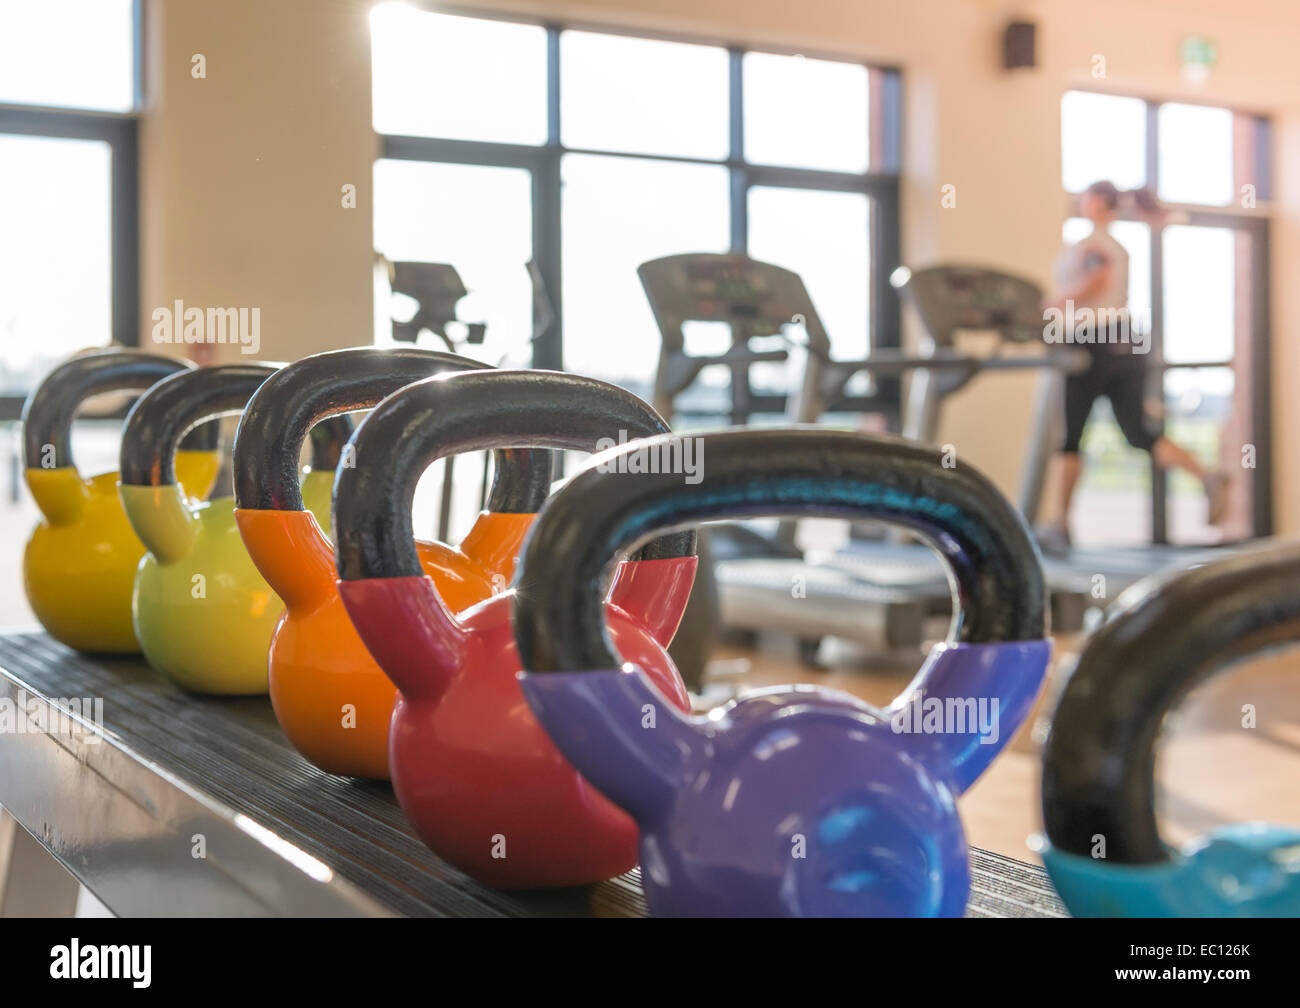 Kettle weights in a gym with a woman on a treadmill in a gym - Stock Image